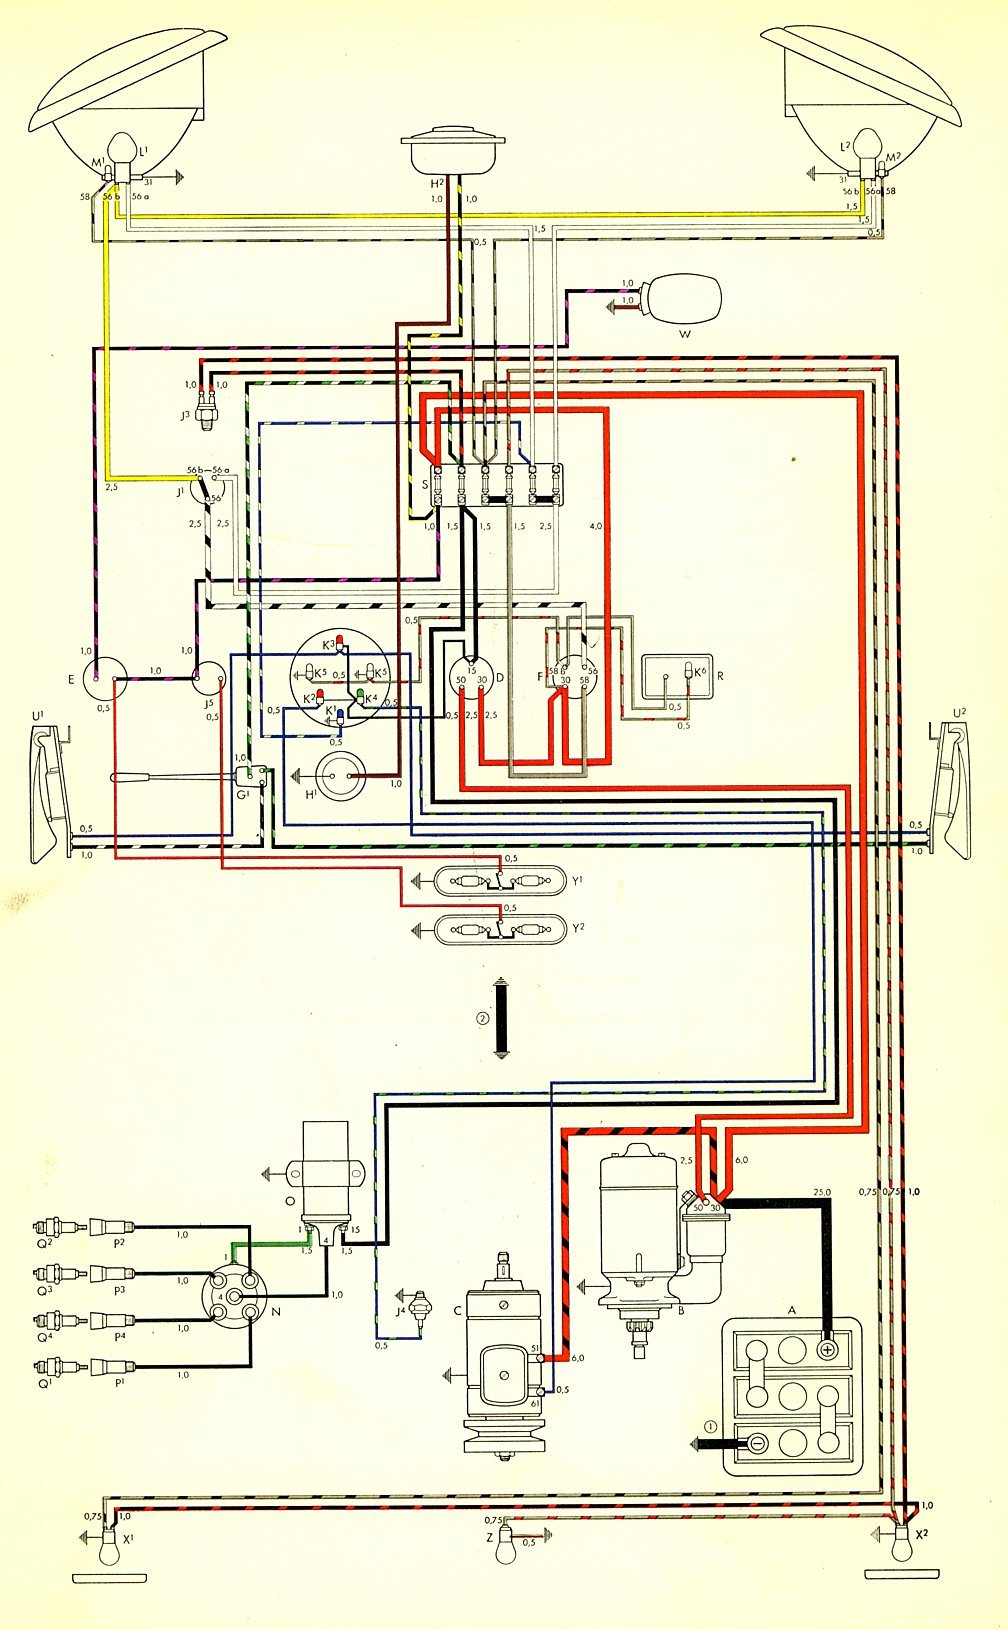 Type 2 Wiring Diagrams Single Line Diagram Electrical One